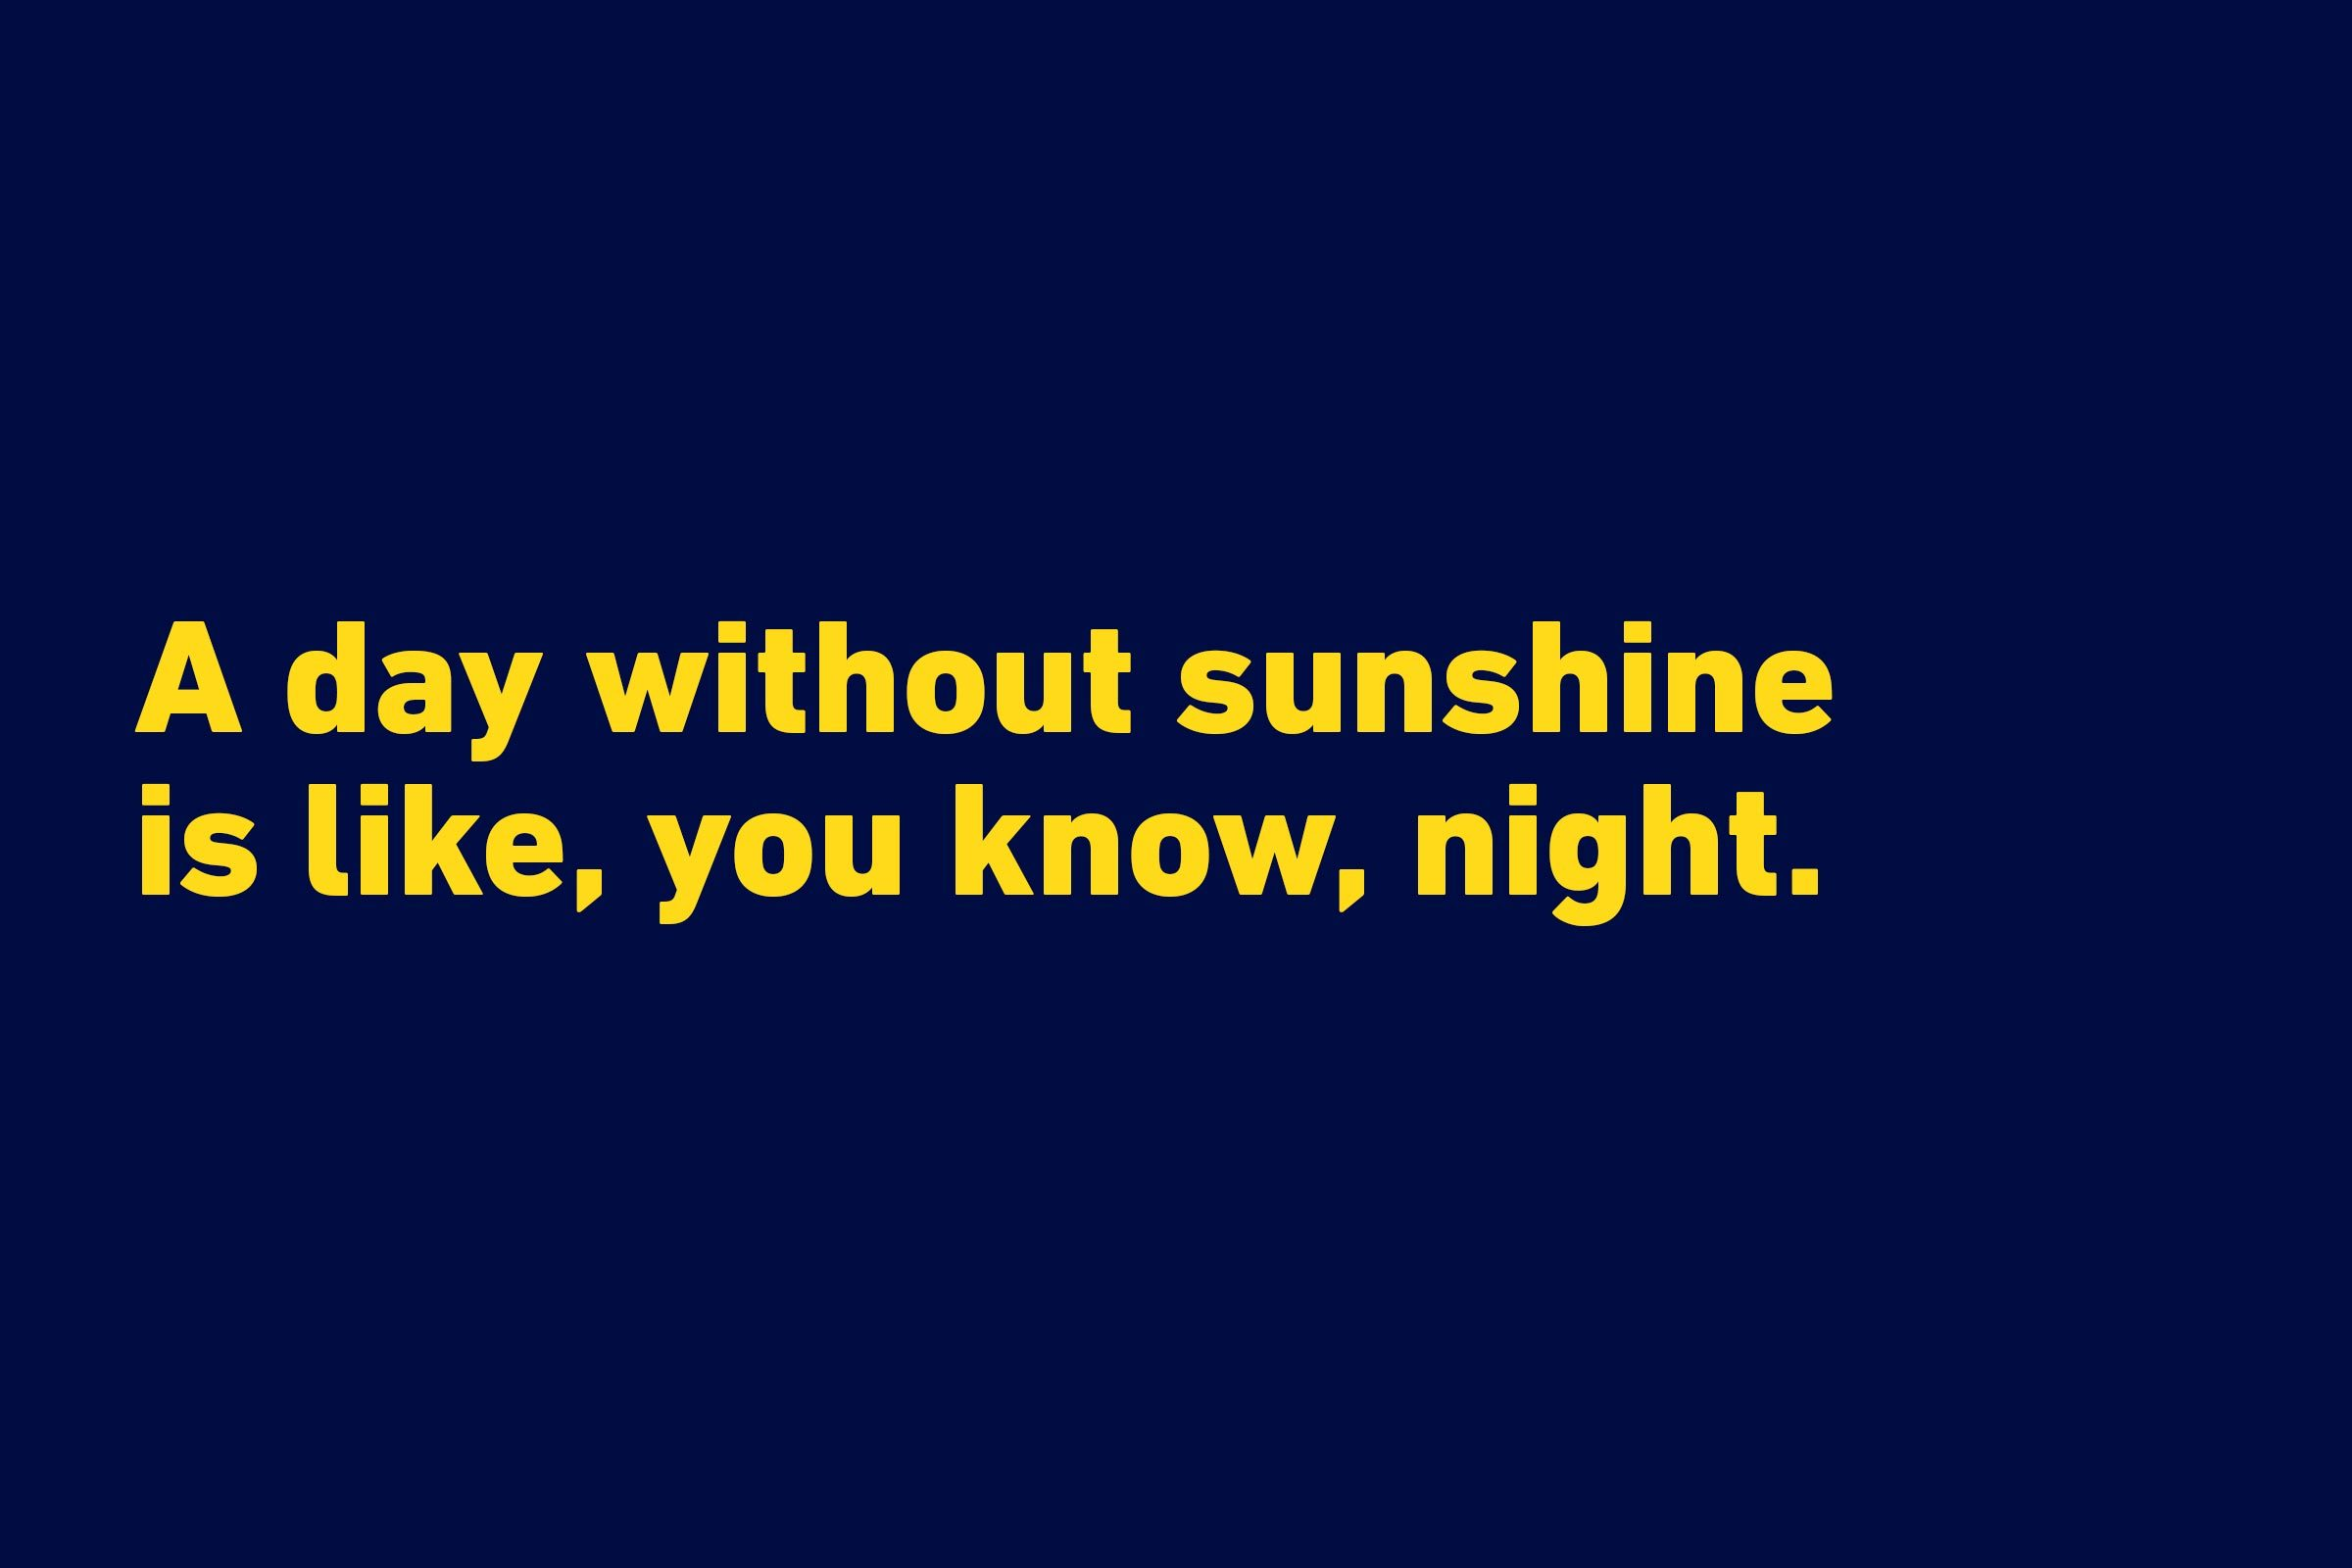 """A day without sunshine is like, you know, night."" —Steve Martin"